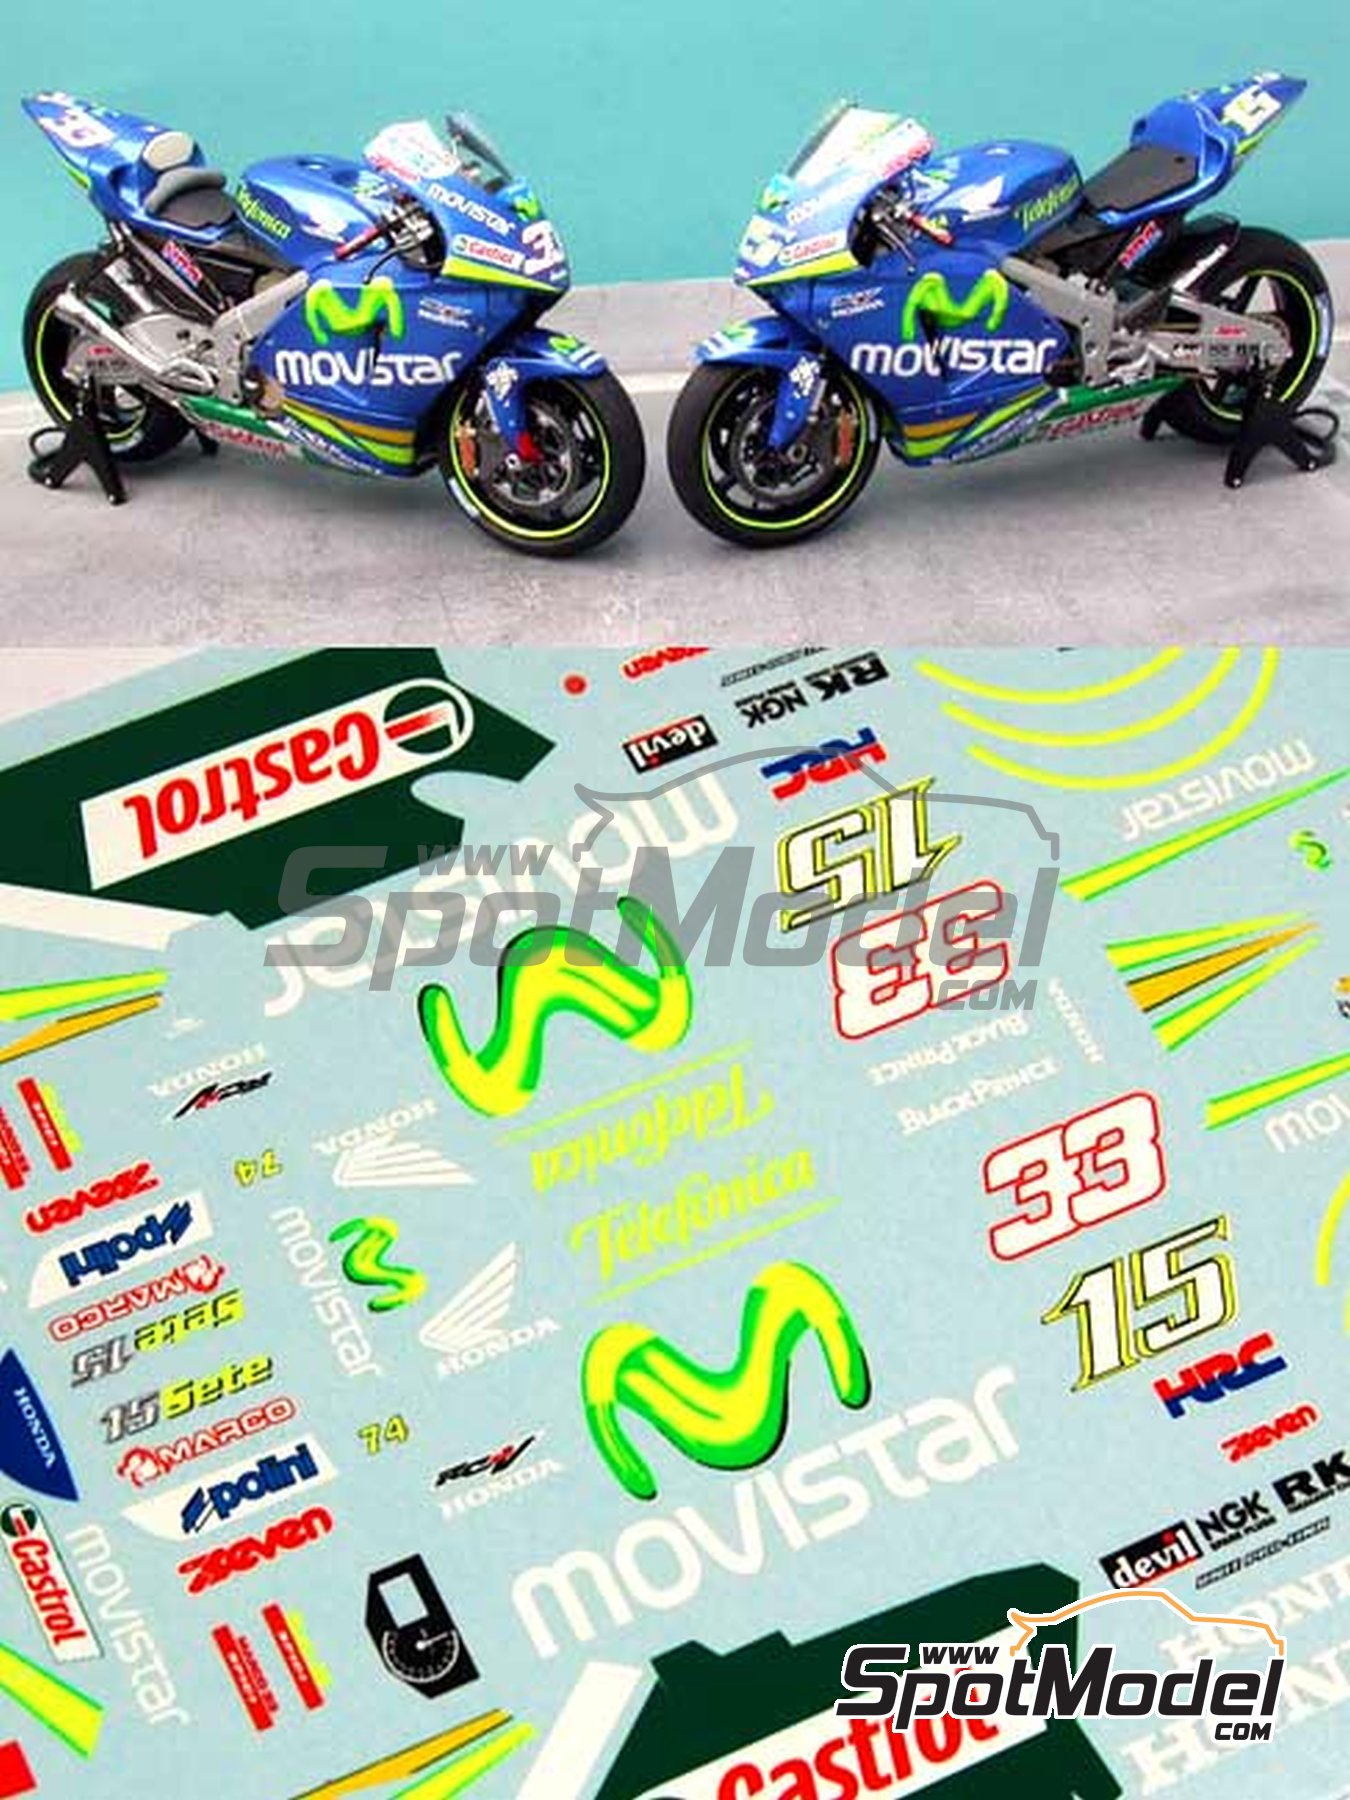 Honda RC211V Telefonica Movistar Team Gresini - Motorcycle World Championship 2005 | Marking / livery in 1/12 scale manufactured by Renaissance Models (ref.MTK12-009DS) image